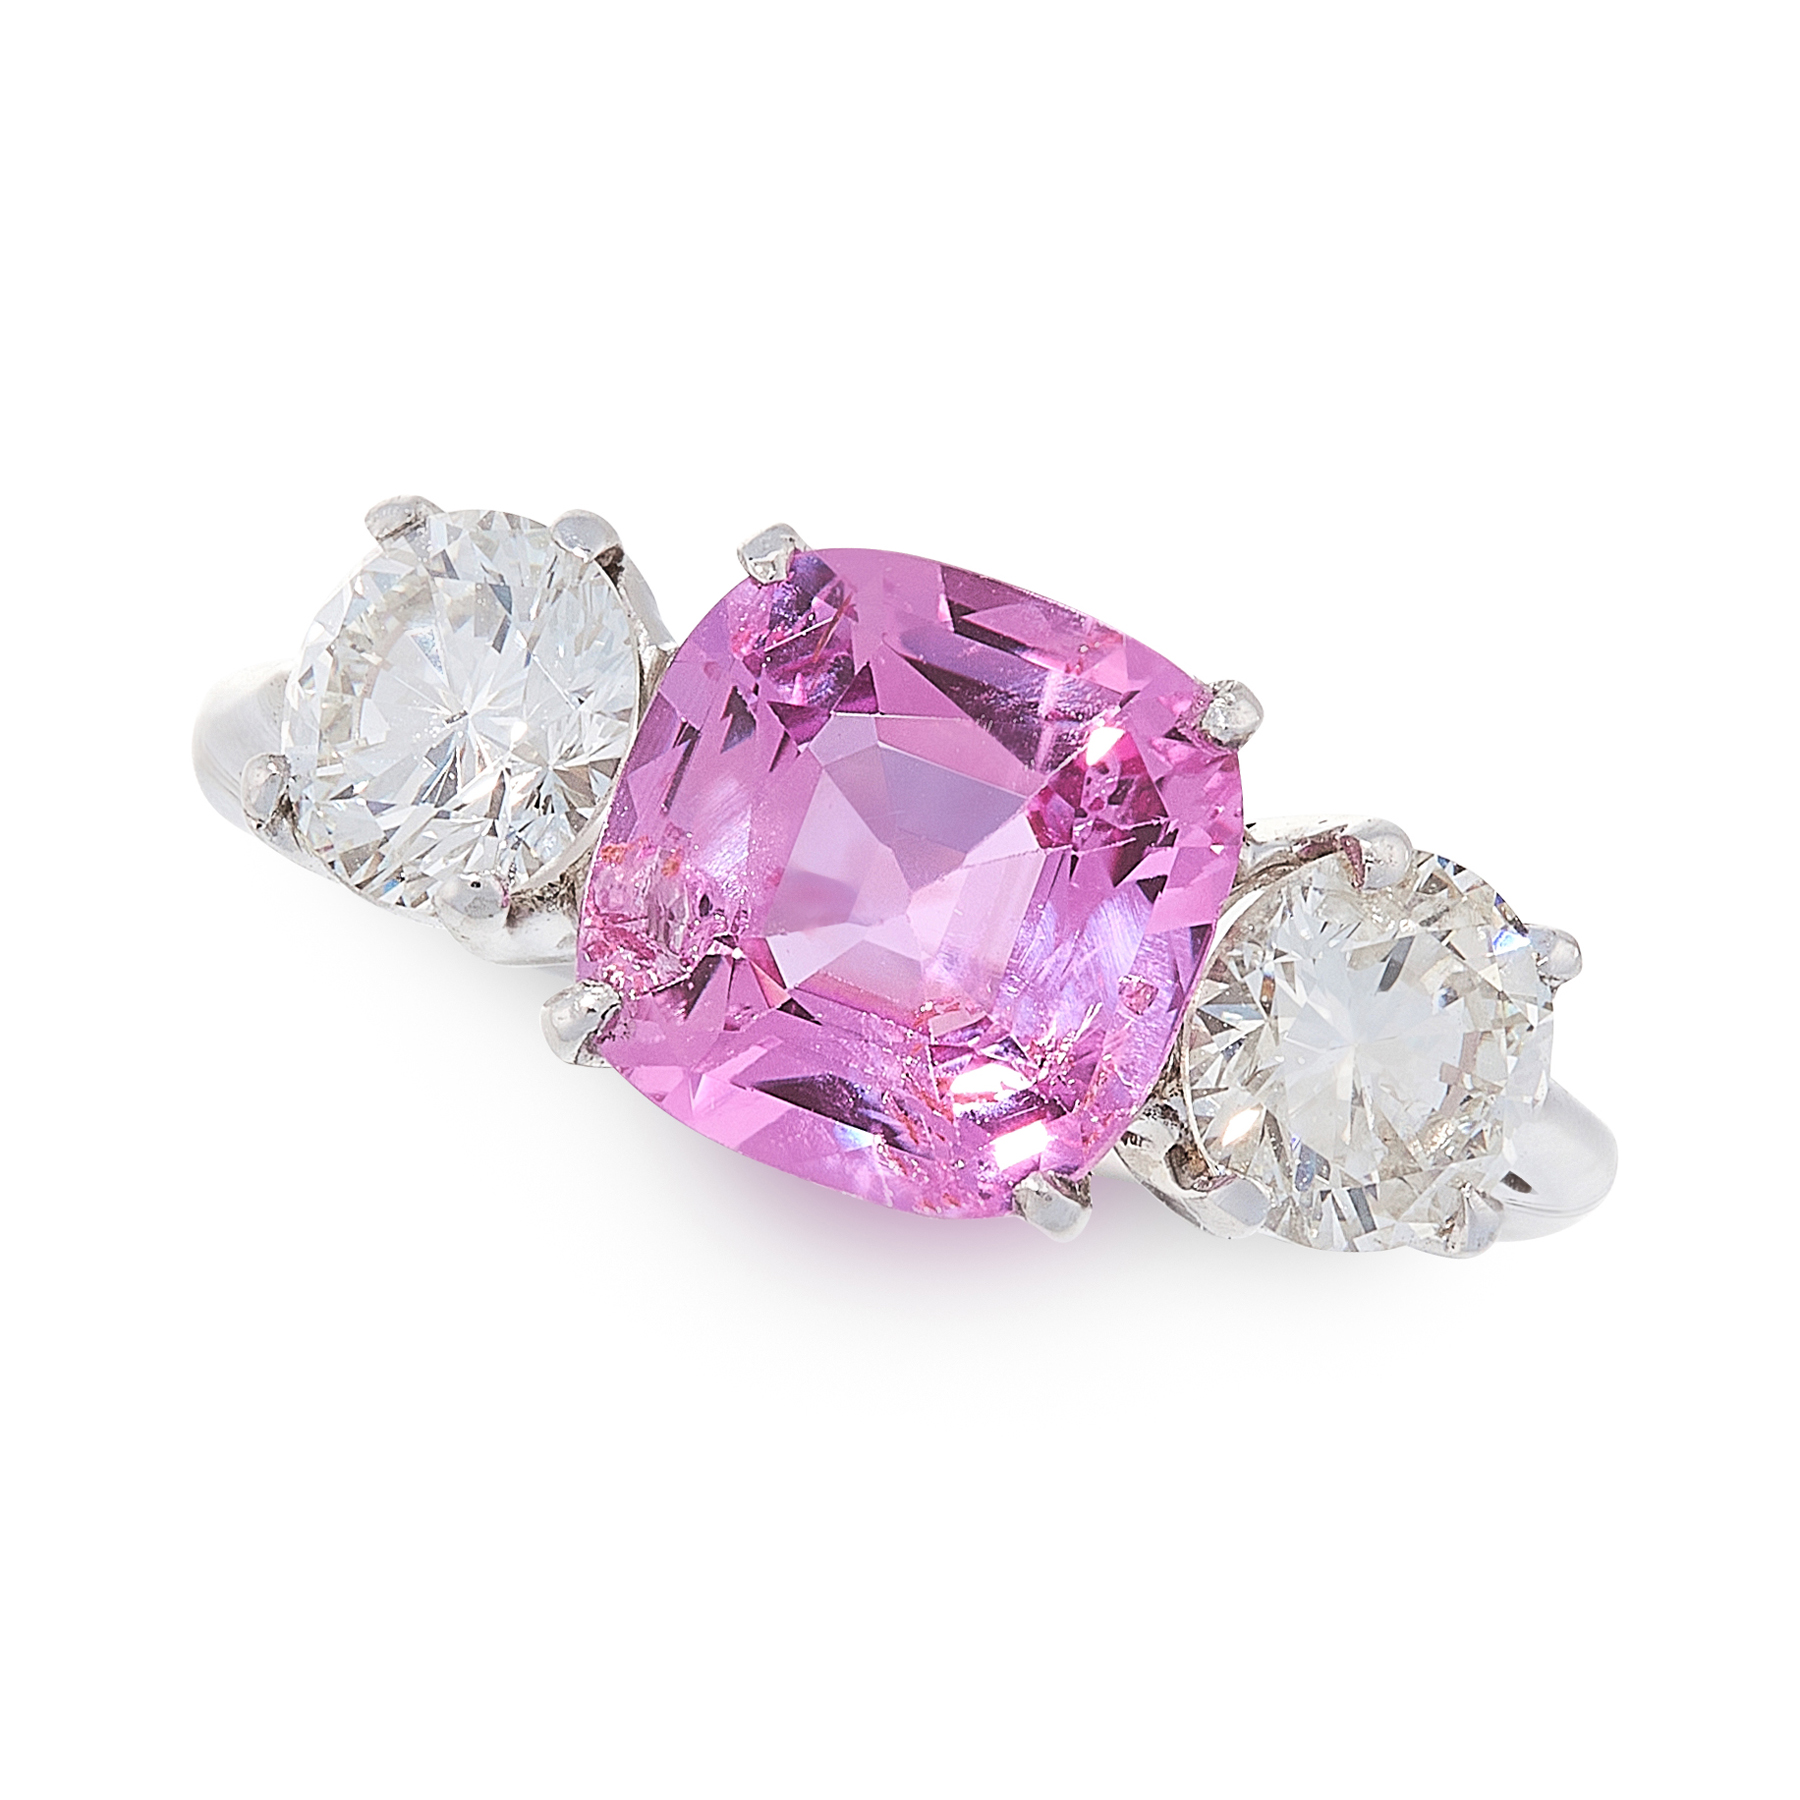 AN UNHEATED PINK SAPPHIRE AND DIAMOND RING in 18ct white gold, set with a cushion cut pink